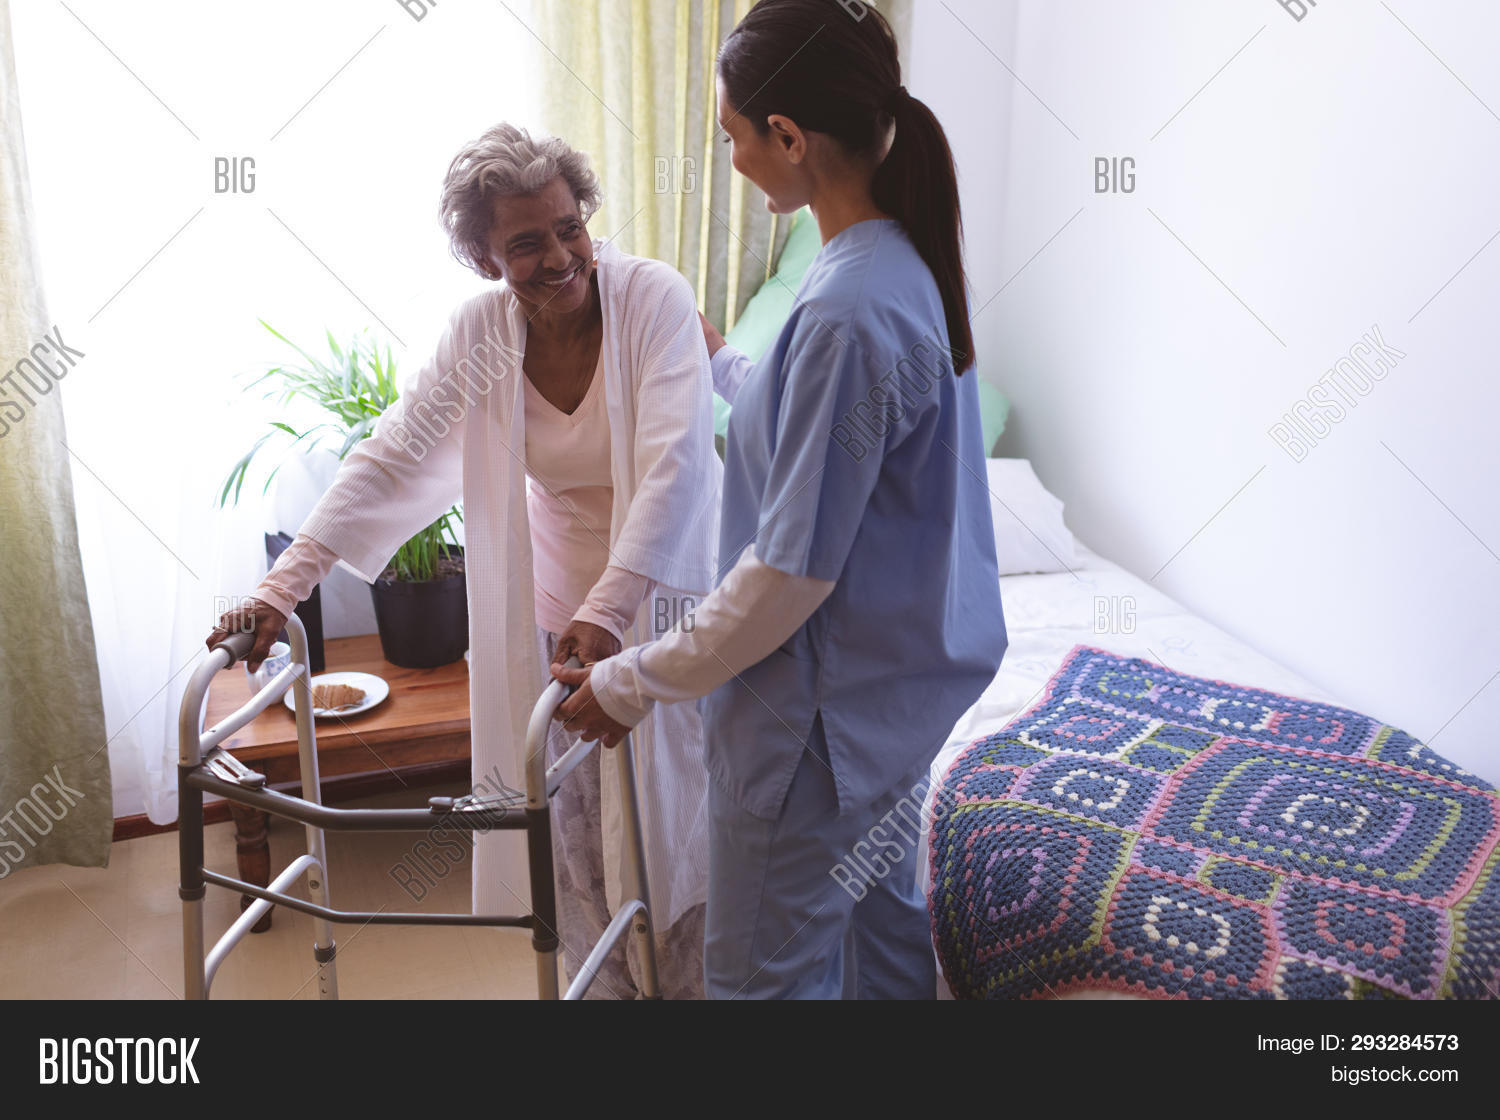 accommodation,active,active senior,bed,blanket,care,checkup,clinic,daycare,disabled,elderly,expertise,female,handicapped,health care,helping,holding,holding hand,interacting,medical examination,medicine,mid adult,mid adult women,mixed-race,mixed-race person,nurse,nursing,nursing home,occupations,old-age,patient,pensioner,physical impairment,retiree,retirement,retirement home,senior,senior citizen,senior women,shelter,standing,talking,together,treatment,trust,uniform,walker,walking,woman